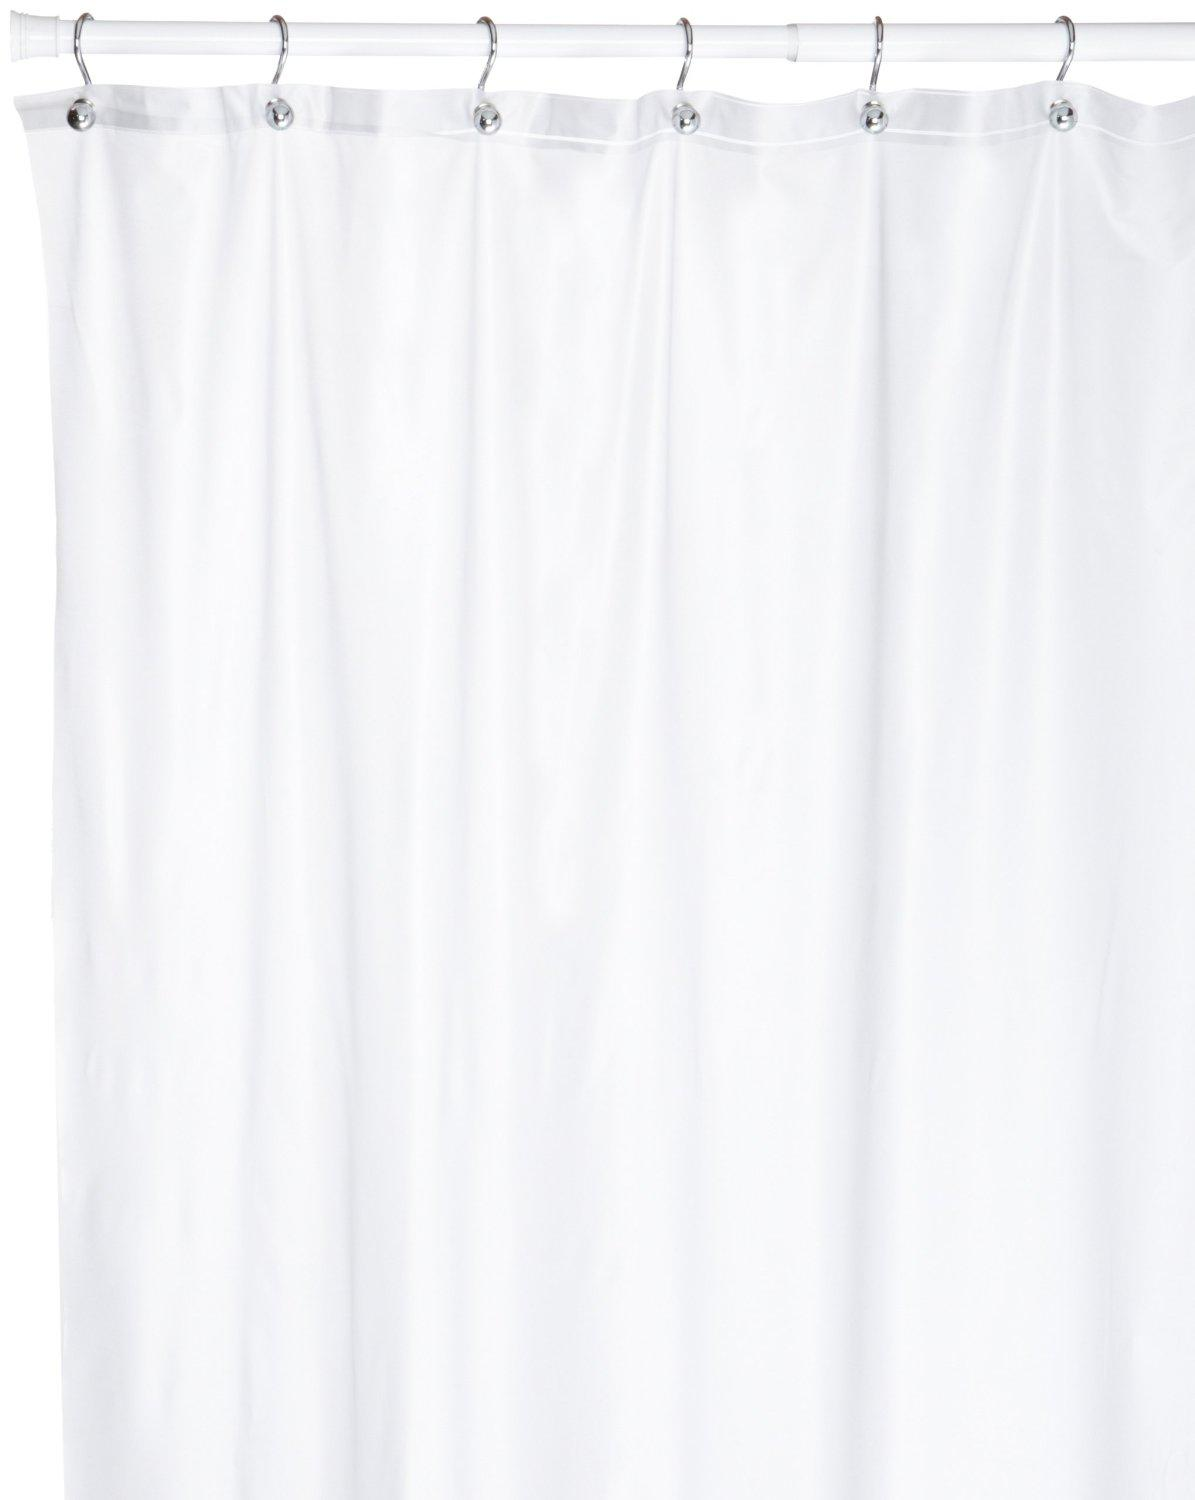 Clear Vinyl Shower Curtain Liner Frosty